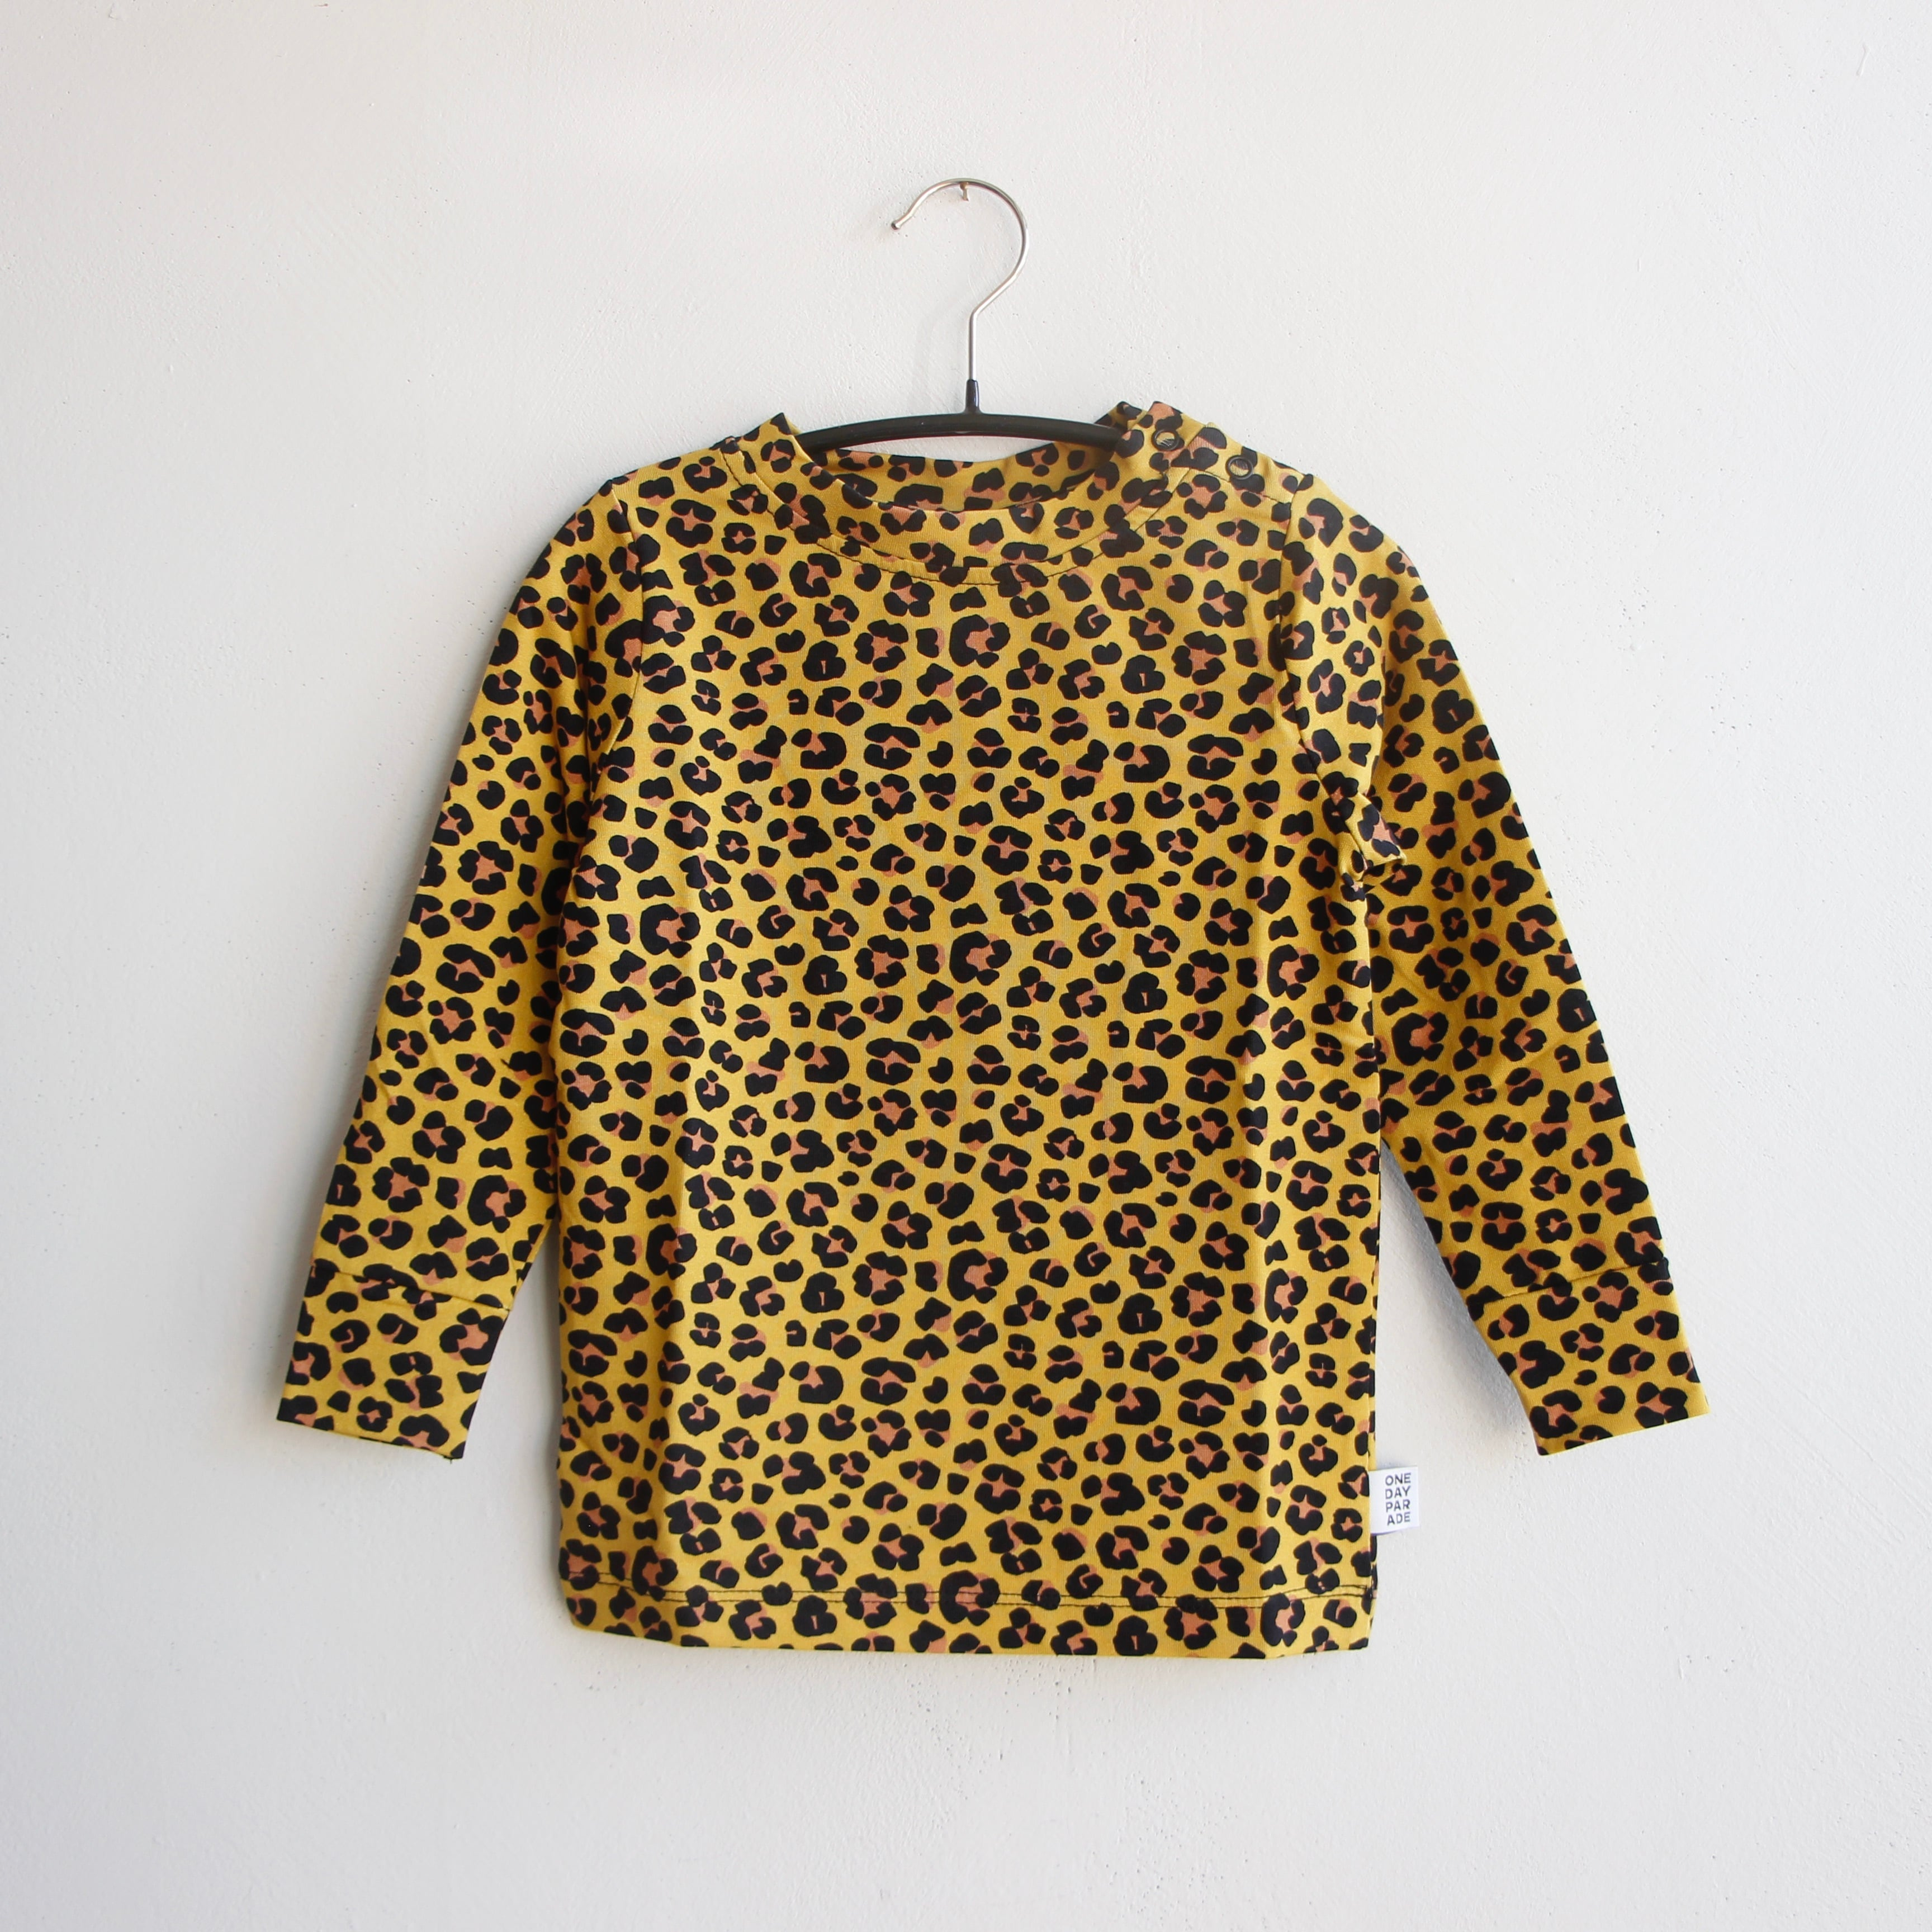 《ONE DAY PARADE 2021AW》LONGSLEEVE / LEOPARD